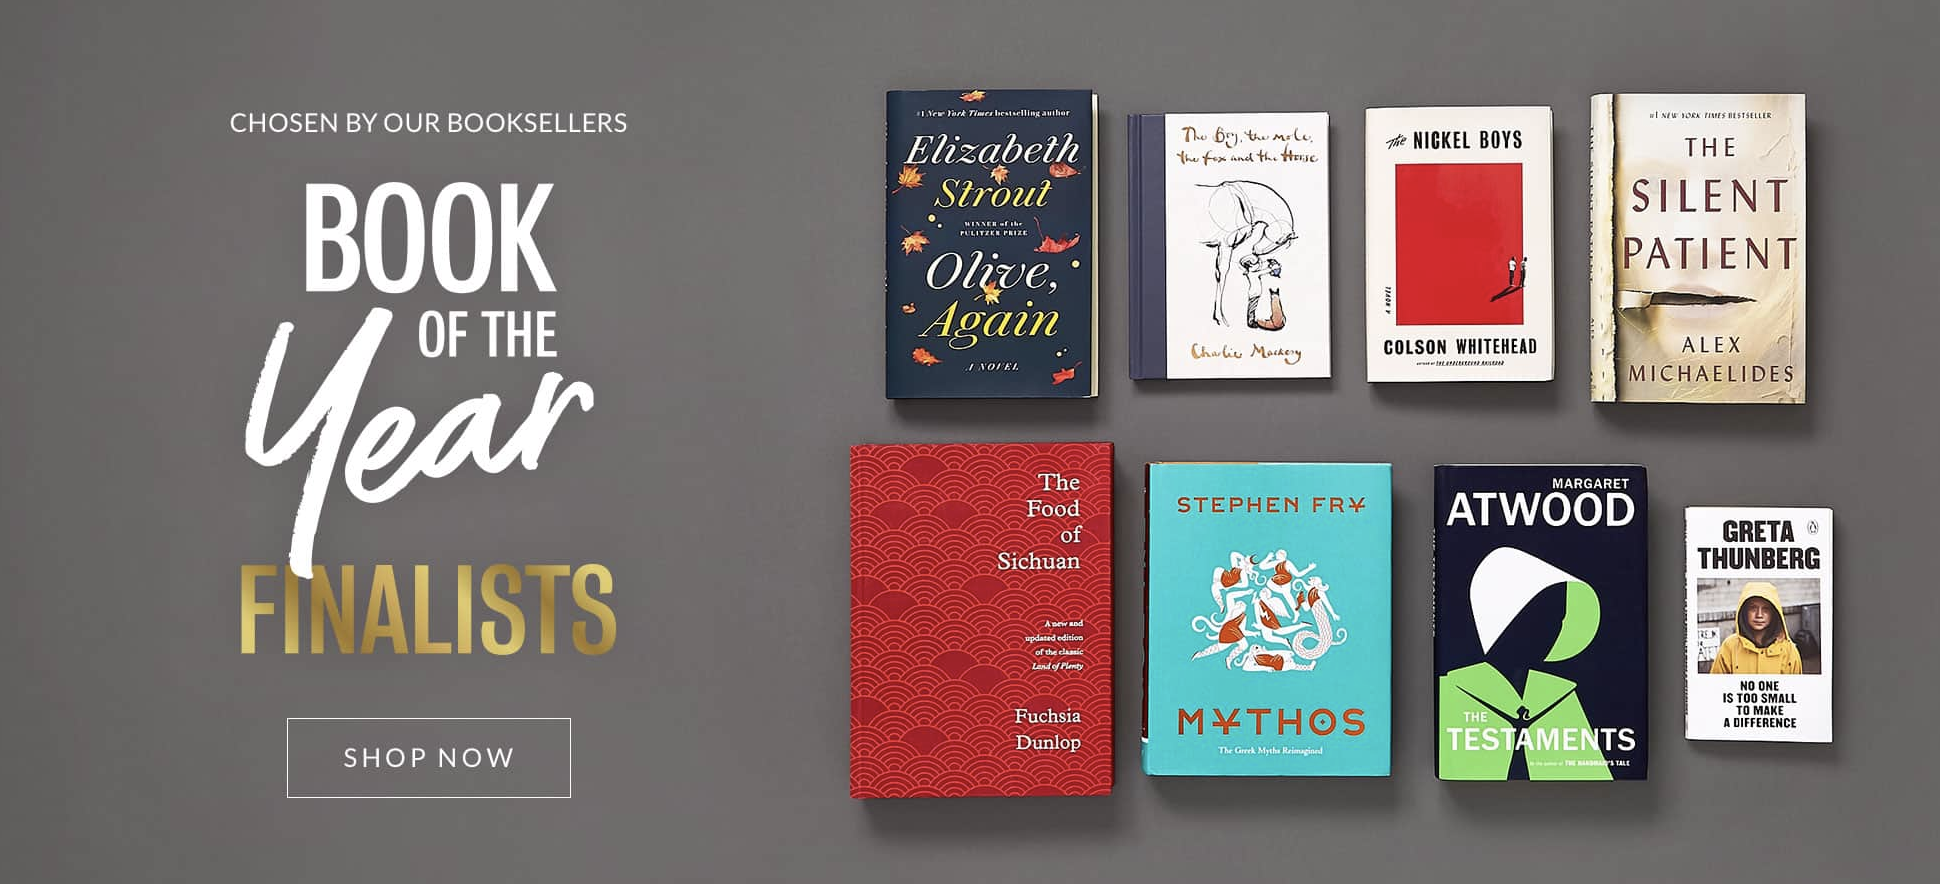 B&N Launches Book of the Year Award